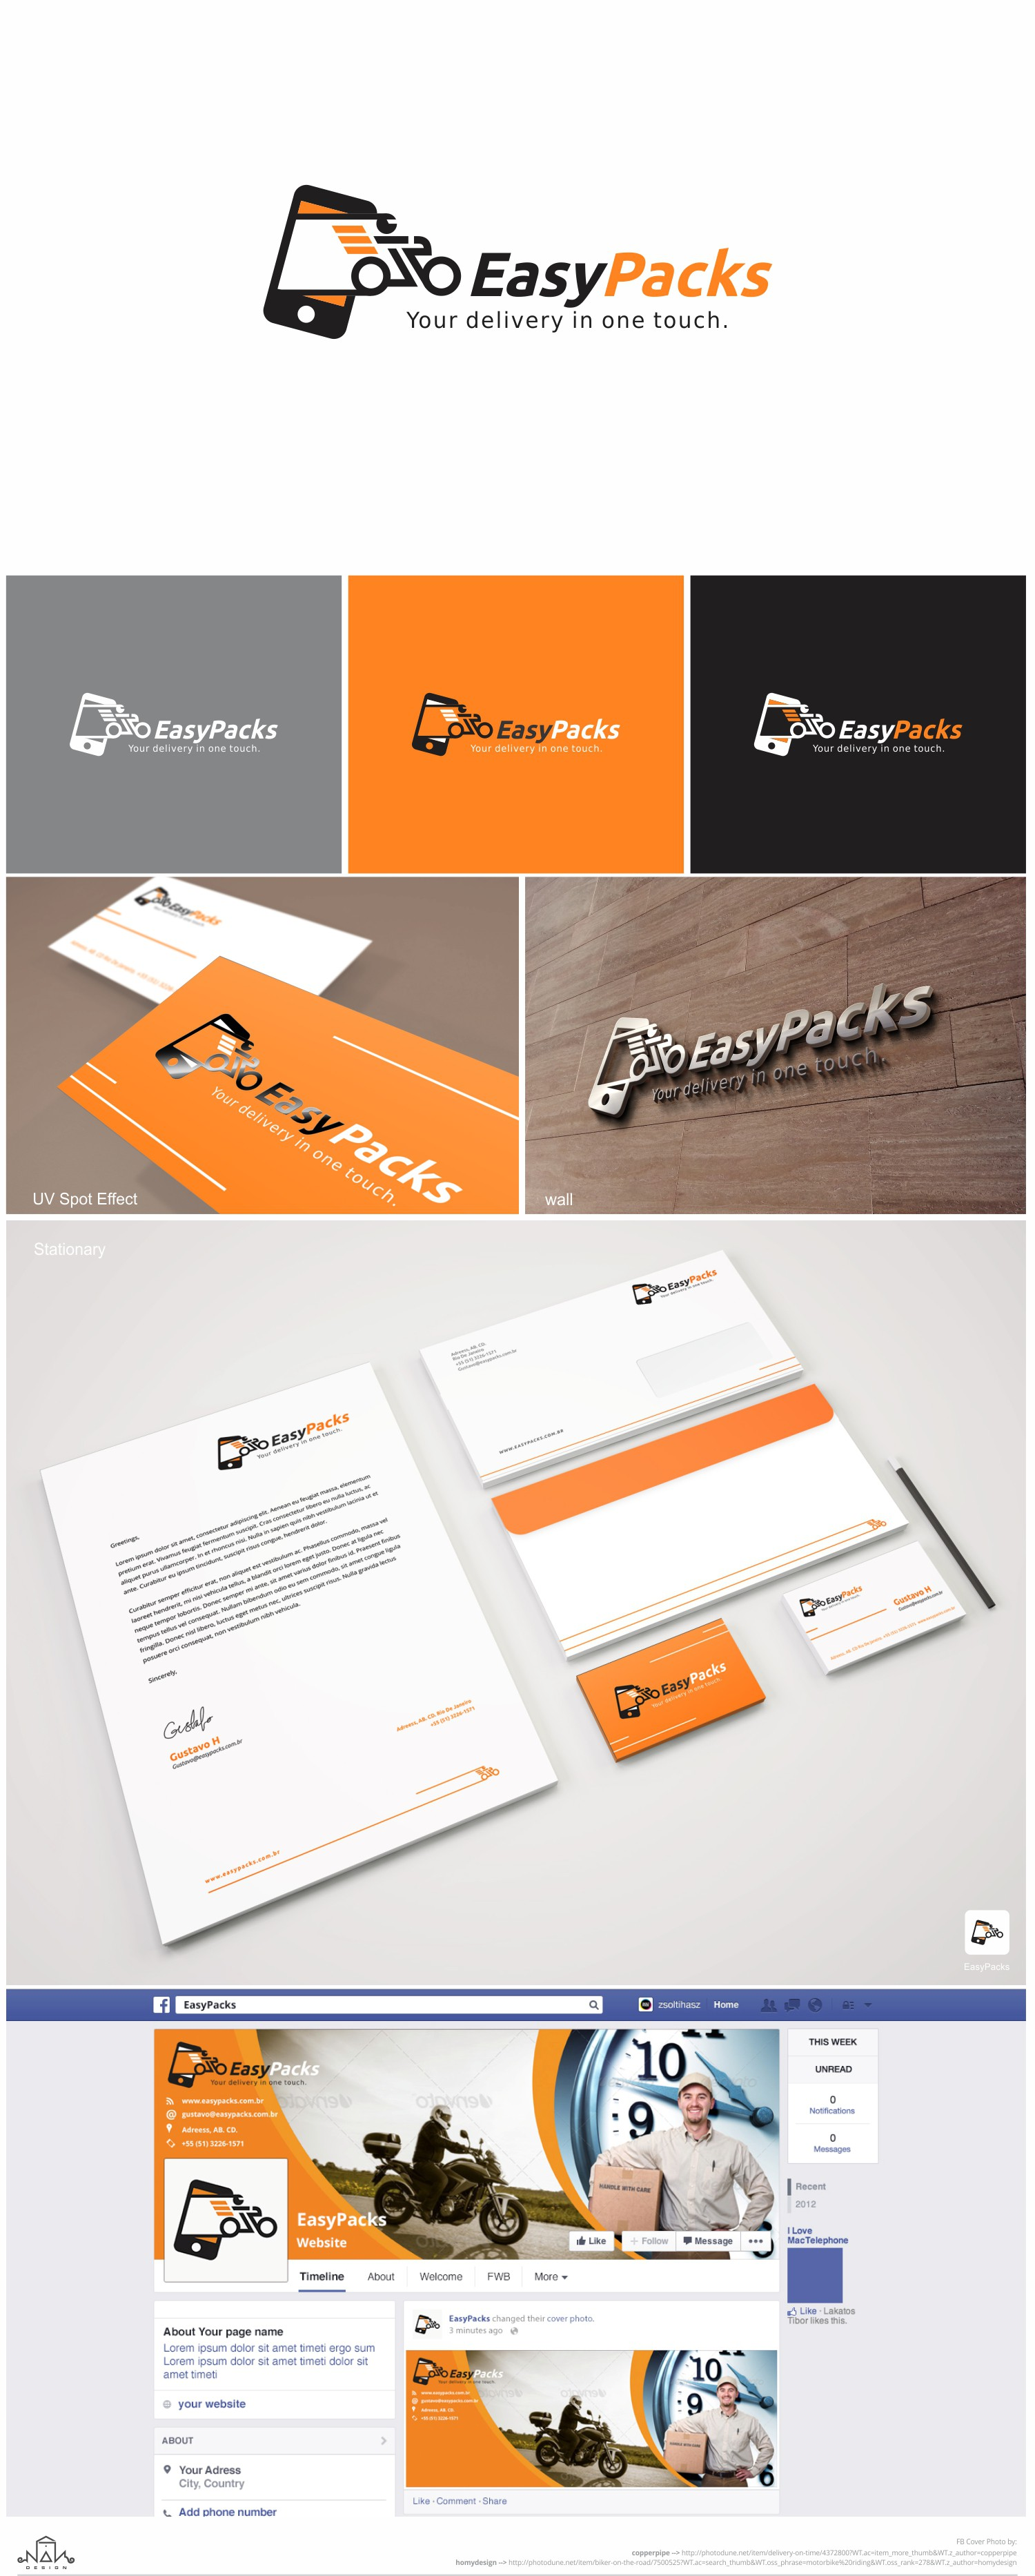 Create a visual identity for an app call motorcycle courier (motoboy)